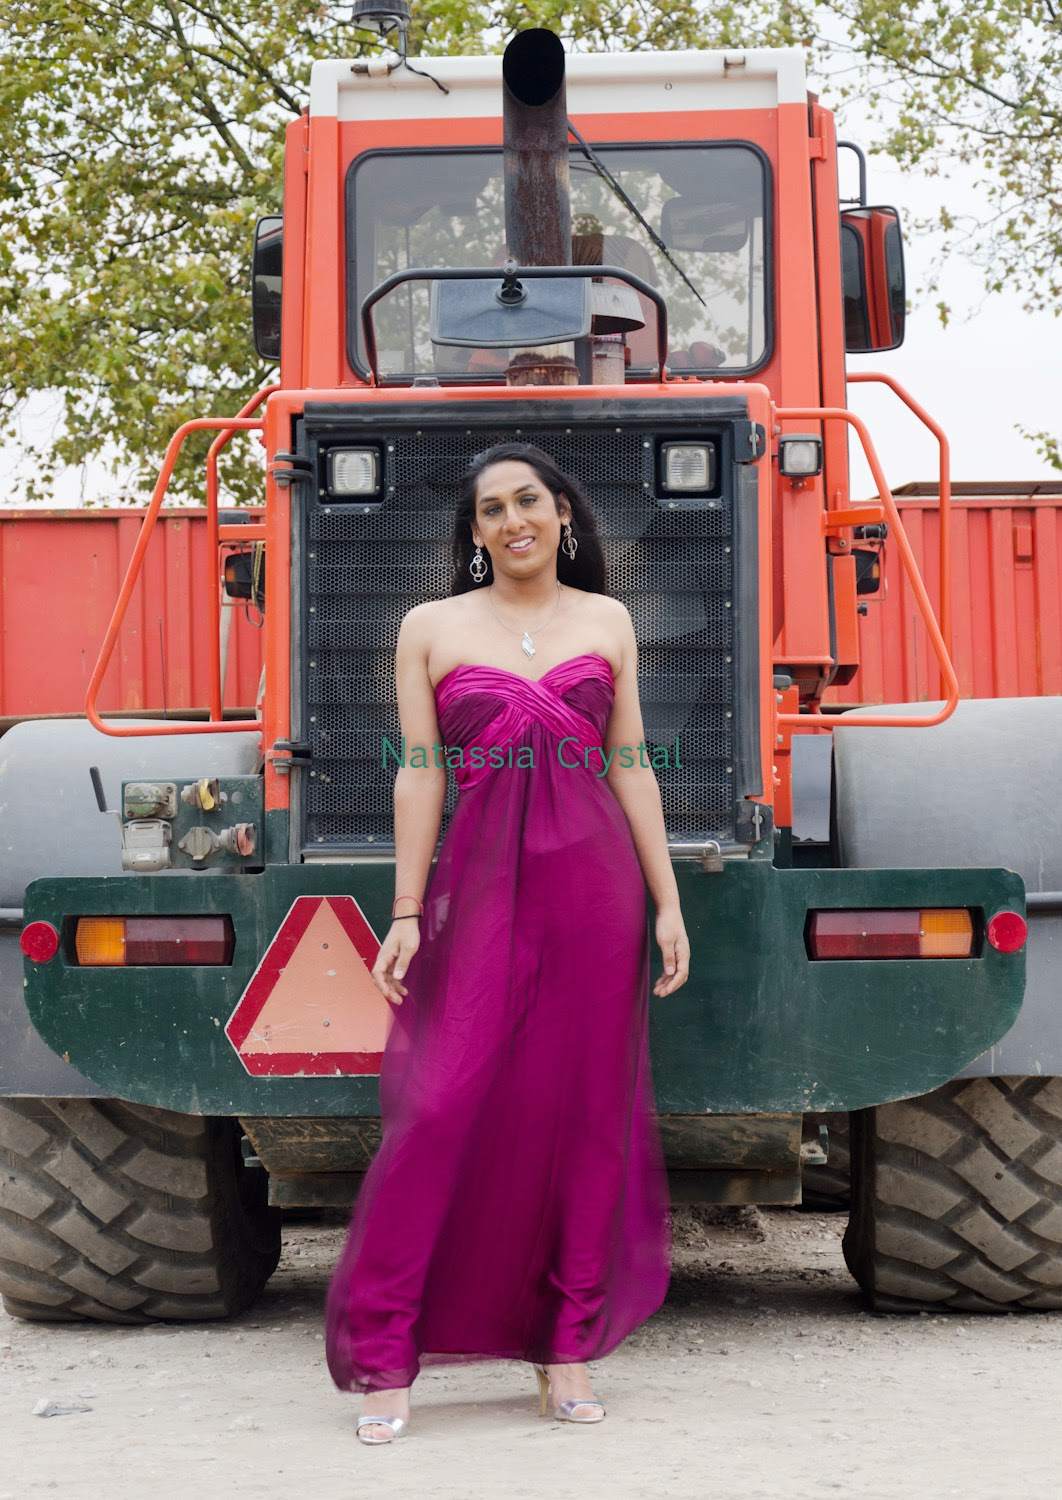 Natassia Crystal natcrys, long purple dress, in front of truck